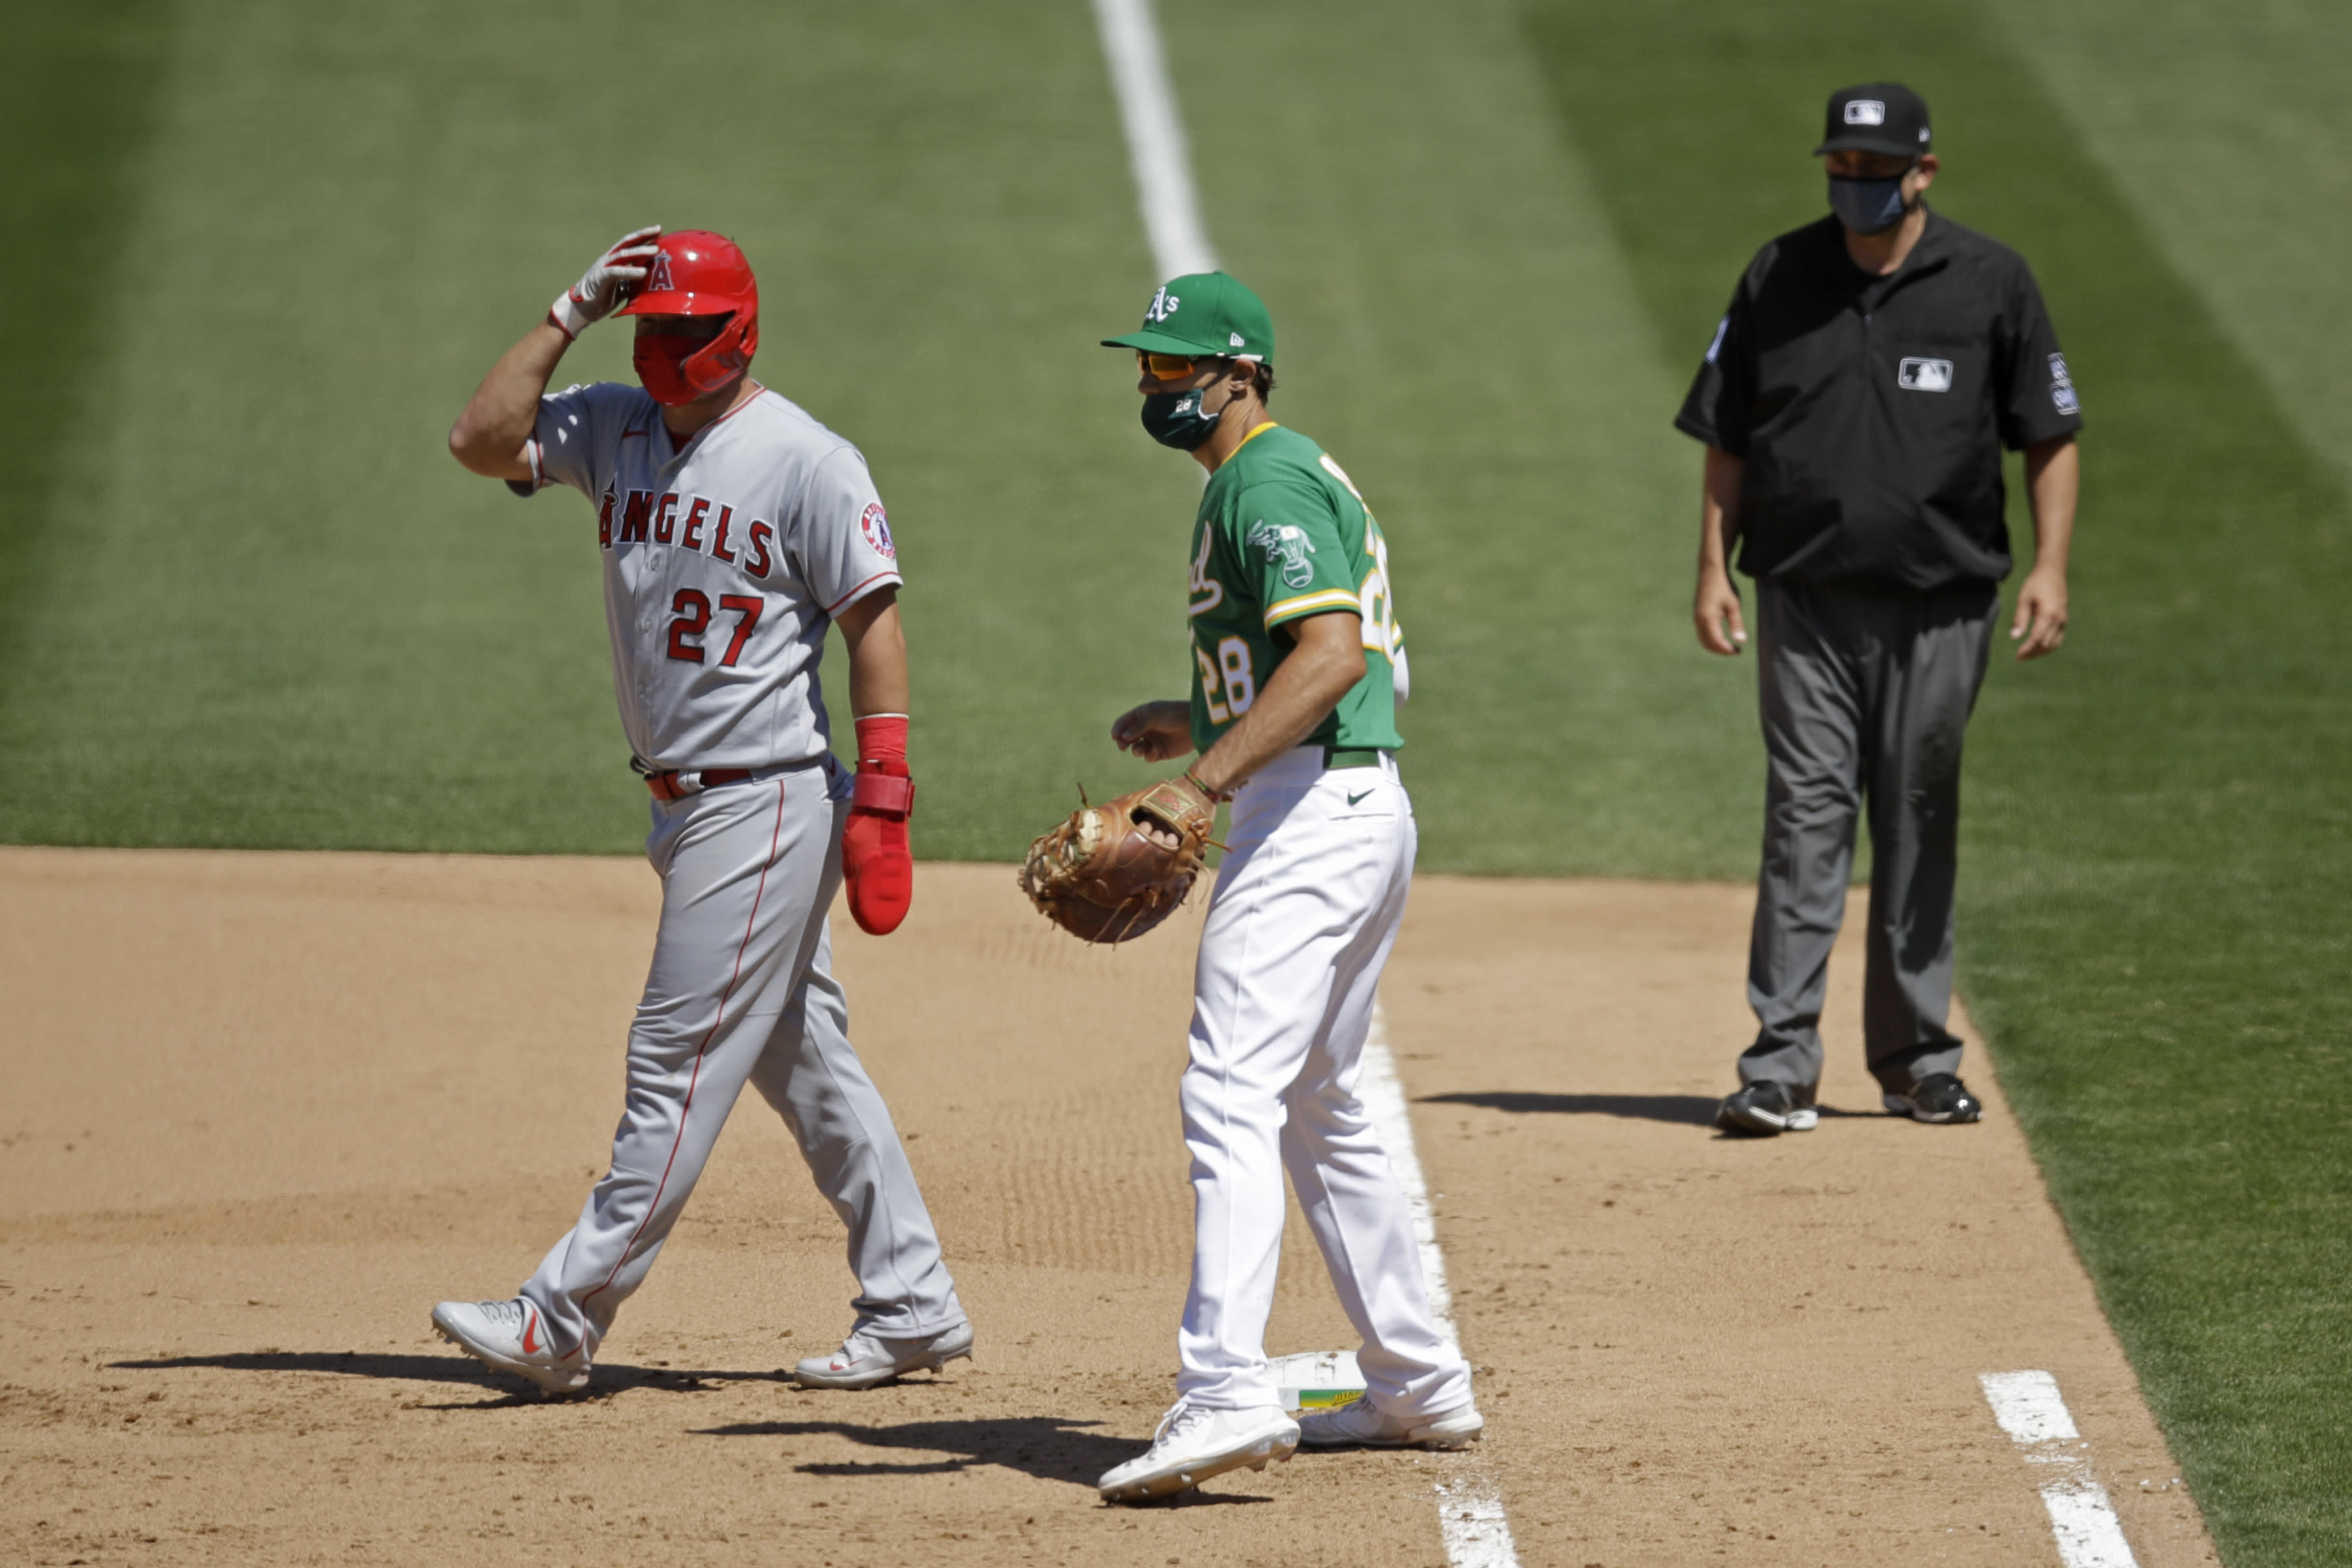 Oakland Athletics' Matt Olson (28) wears a mask as Los Angeles Angels' Mike Trout, left, also wears one while taking a lead off first base during the eighth inning of a baseball game Monday, July 27, 2020, in Oakland, Calif. (AP Photo/Ben Margot)